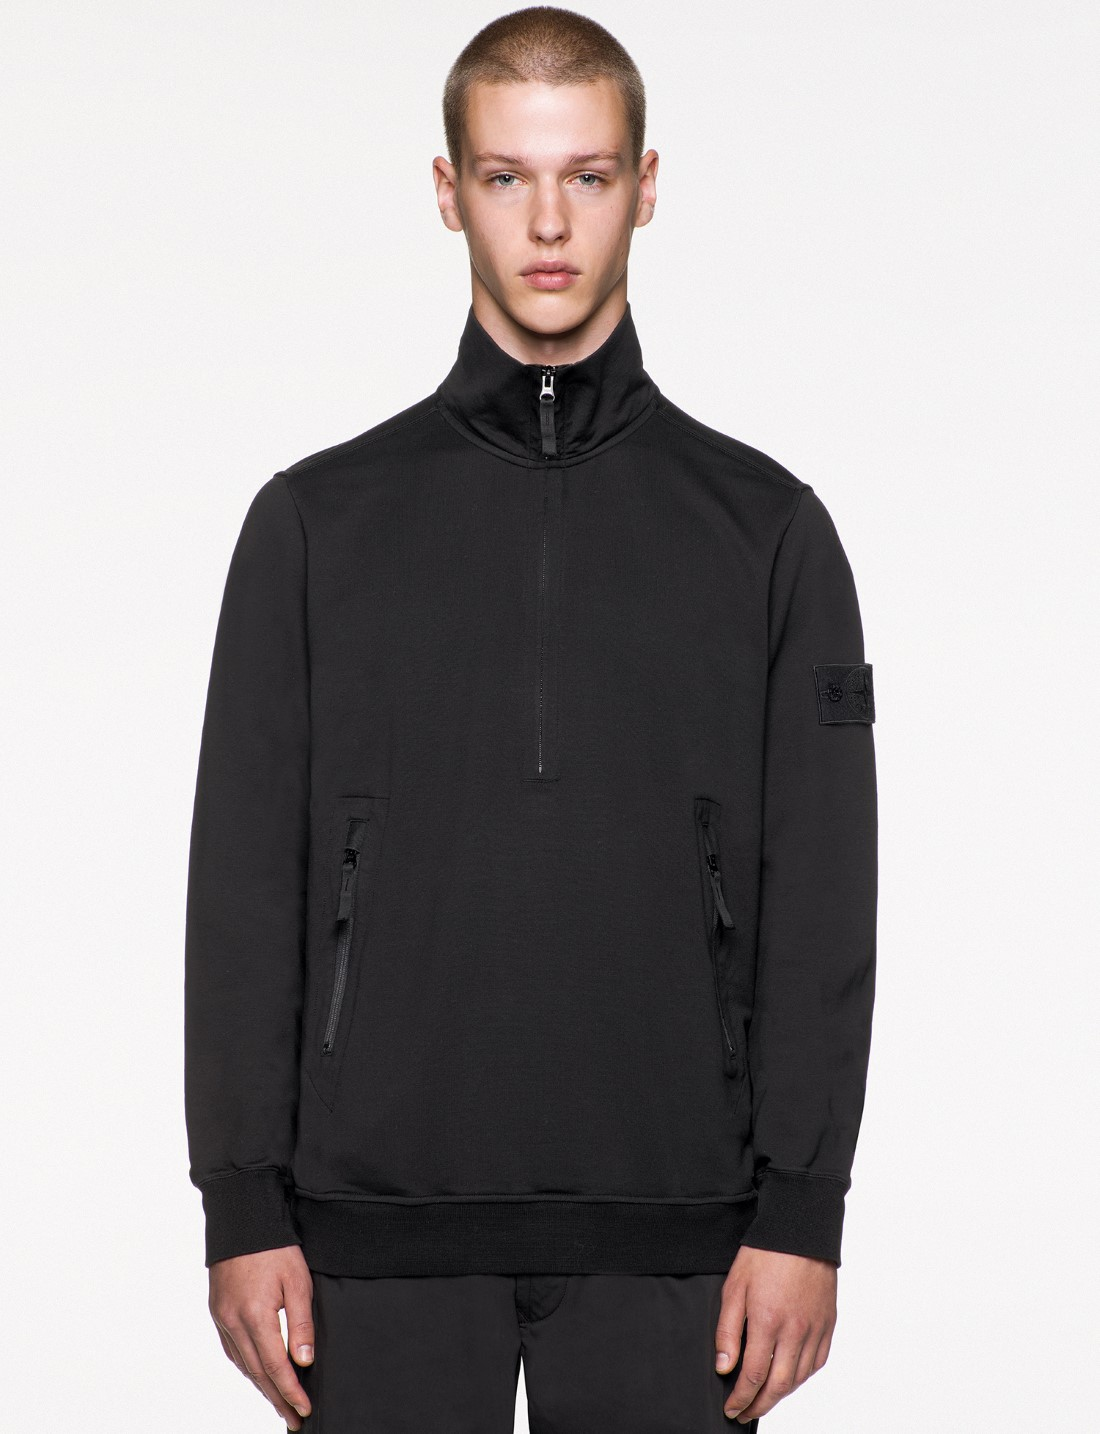 Stone Island - Collection capsule Ghost Pieces